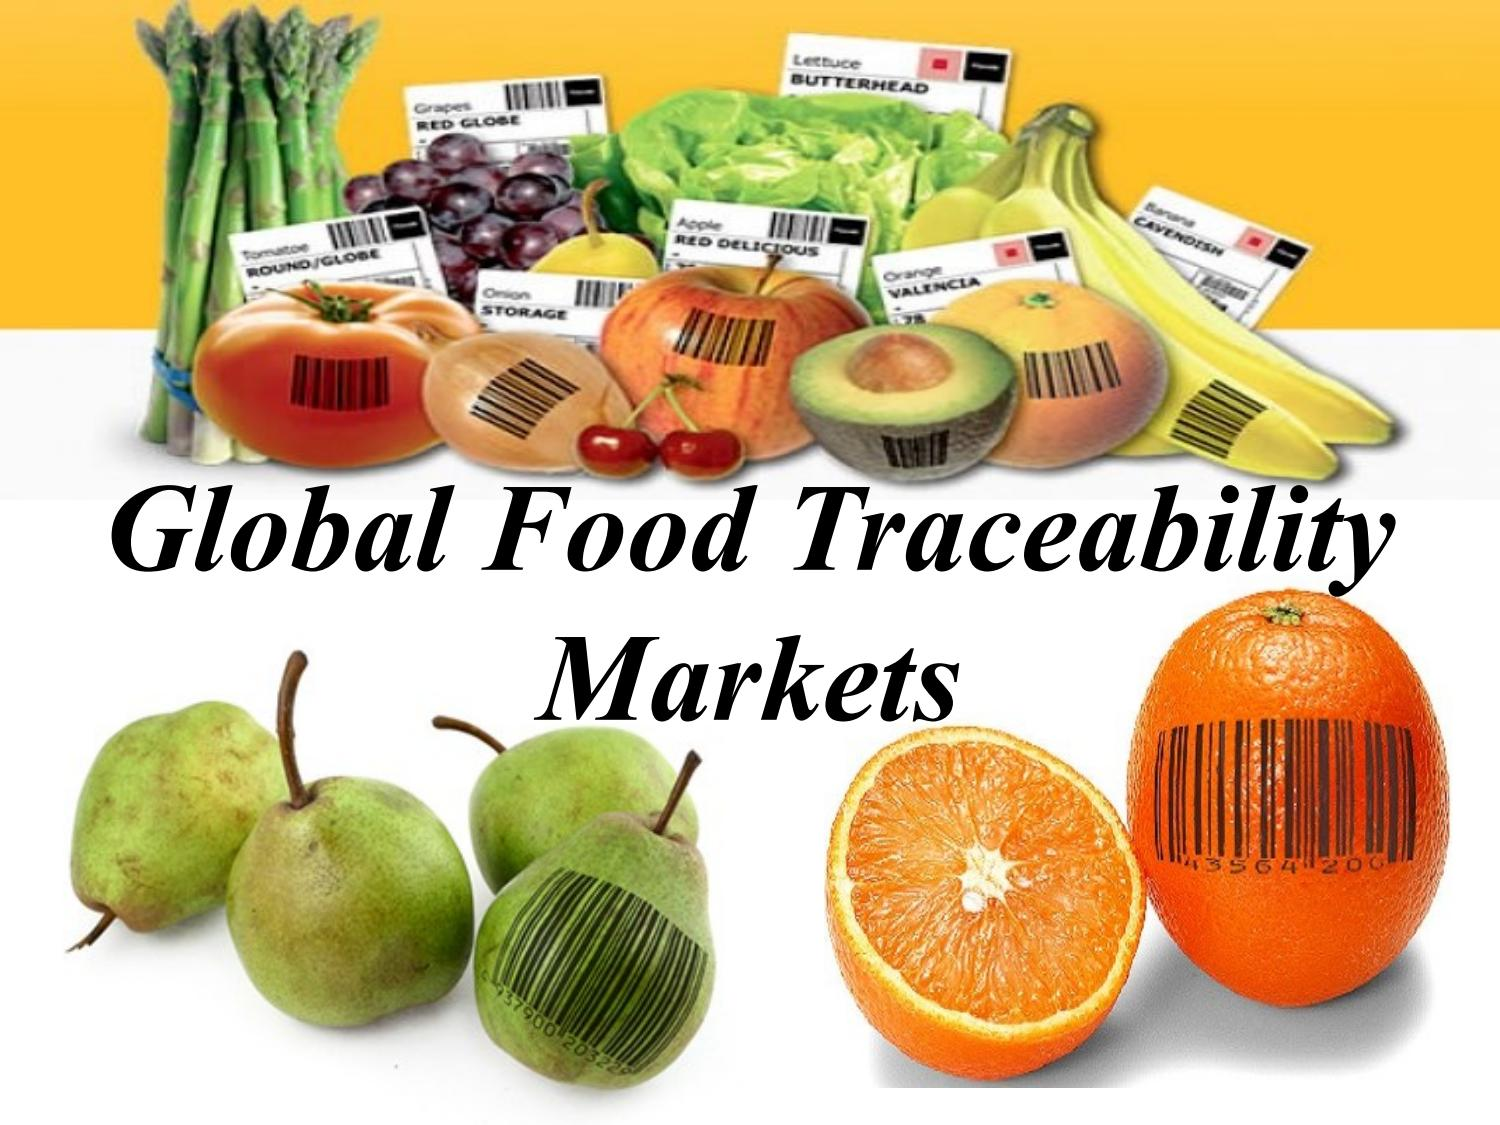 global food traceability market tracking technologies